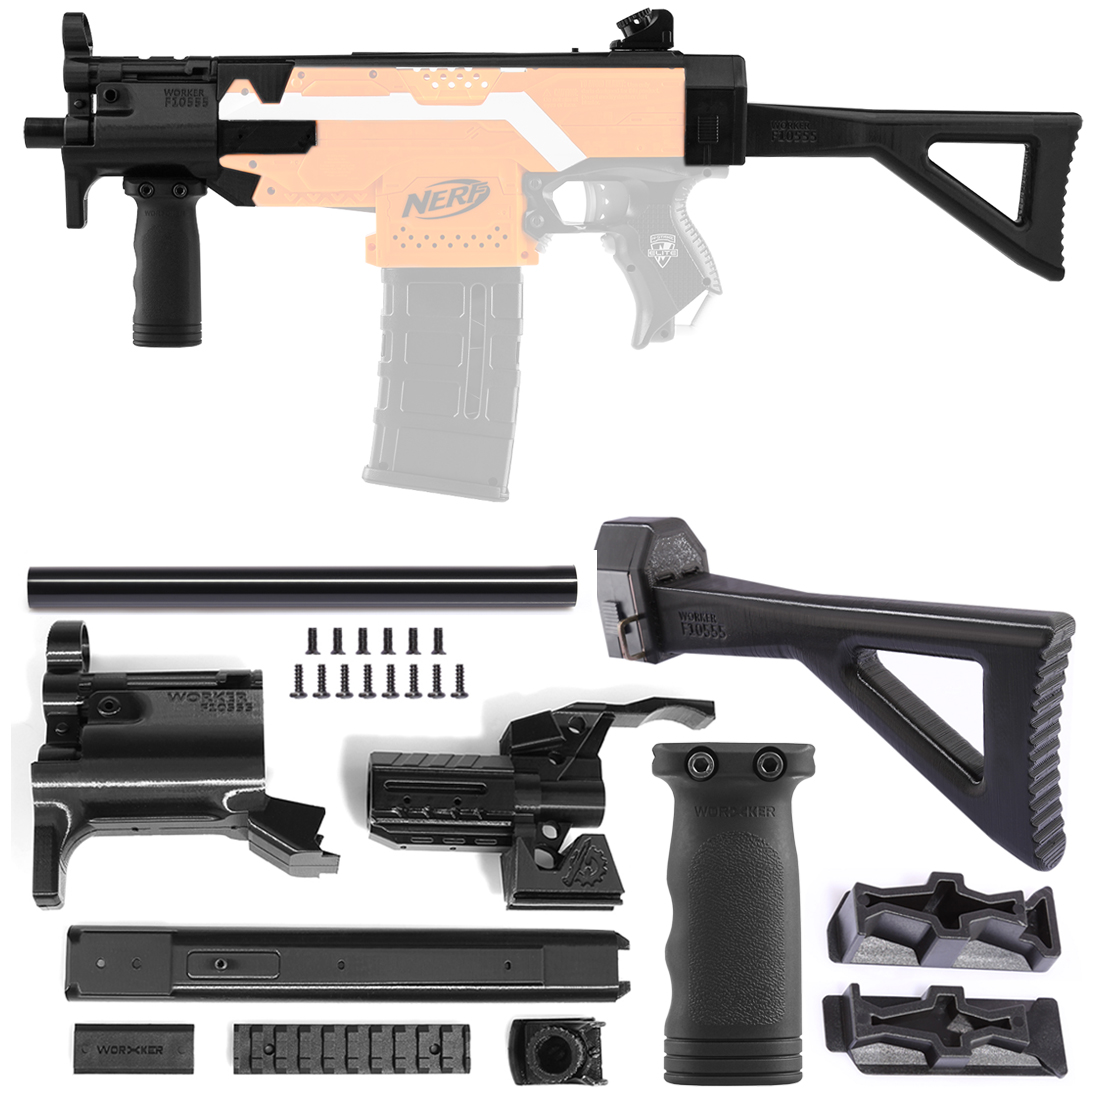 Worker F10555 3D Printing Modularized No.114-K Front Tube + Type-C Shoulder Stock Kit for Nerf Stryfe - Black садовая детская тяпка truper atj kid 10555